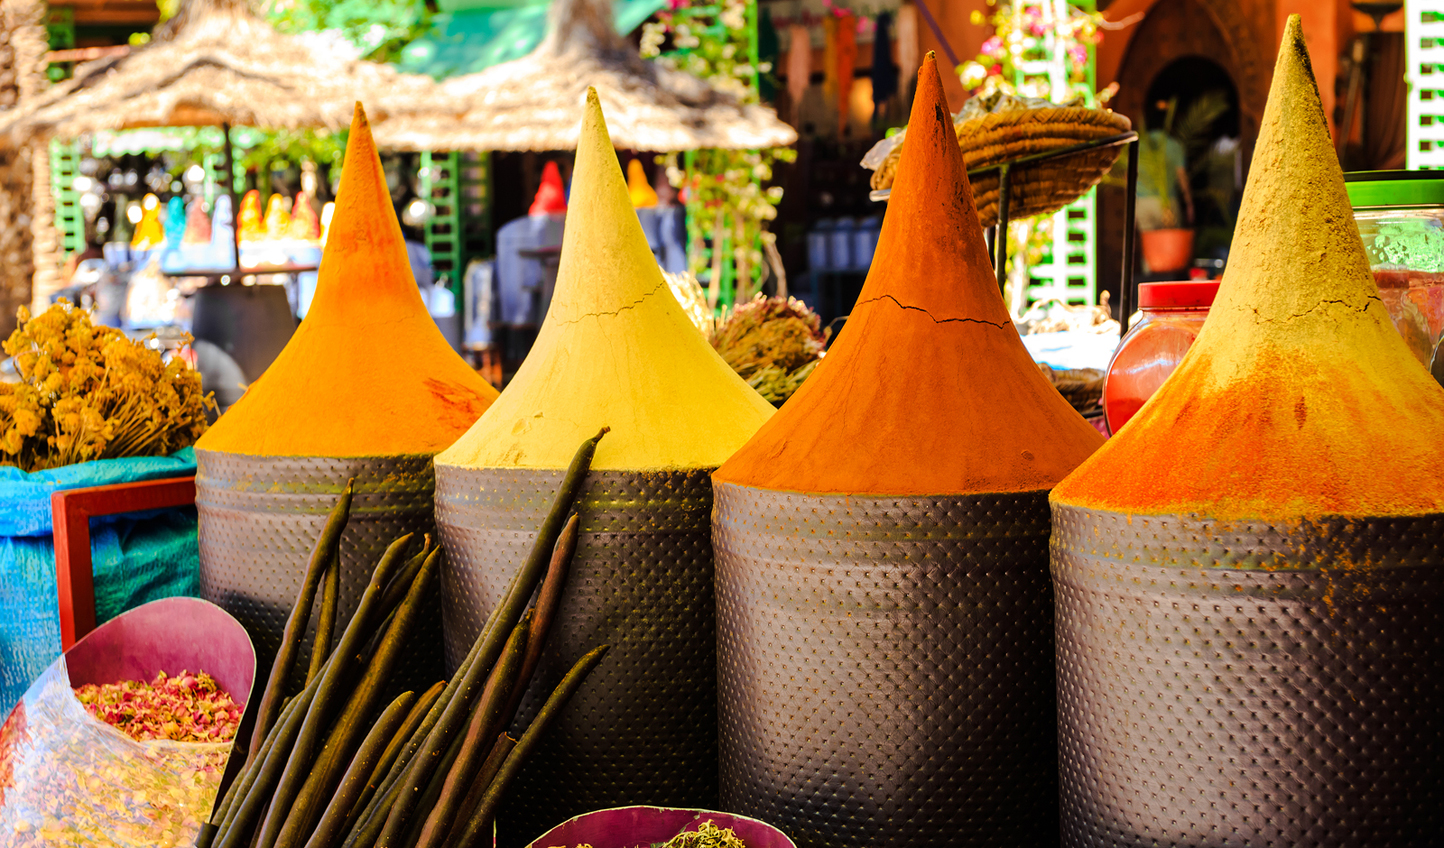 Breathe in the heady scent of the spices in the souk